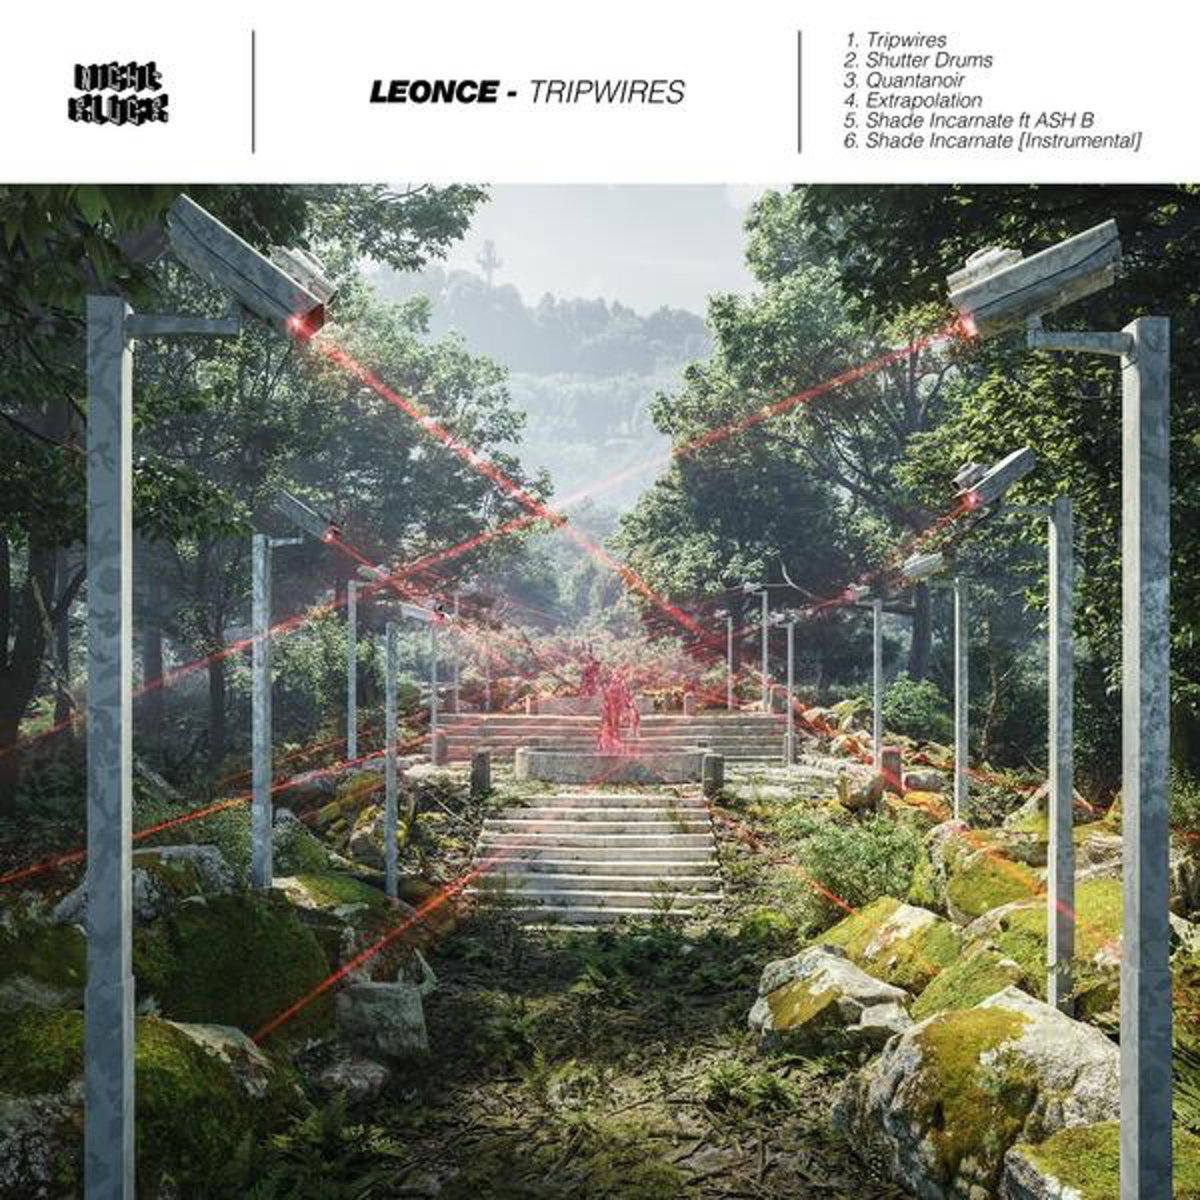 Leonce debuts on Night Slugs with new EP, Tripwires